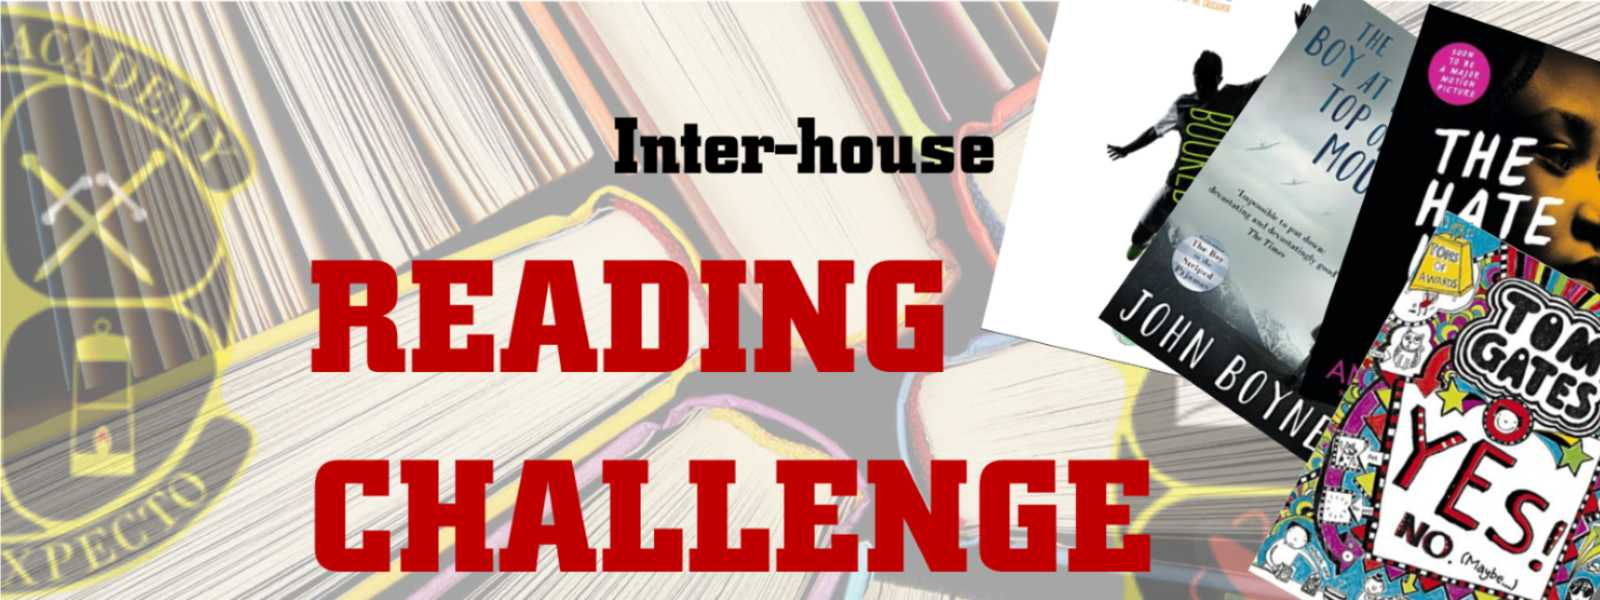 Inter House Reading Challenge